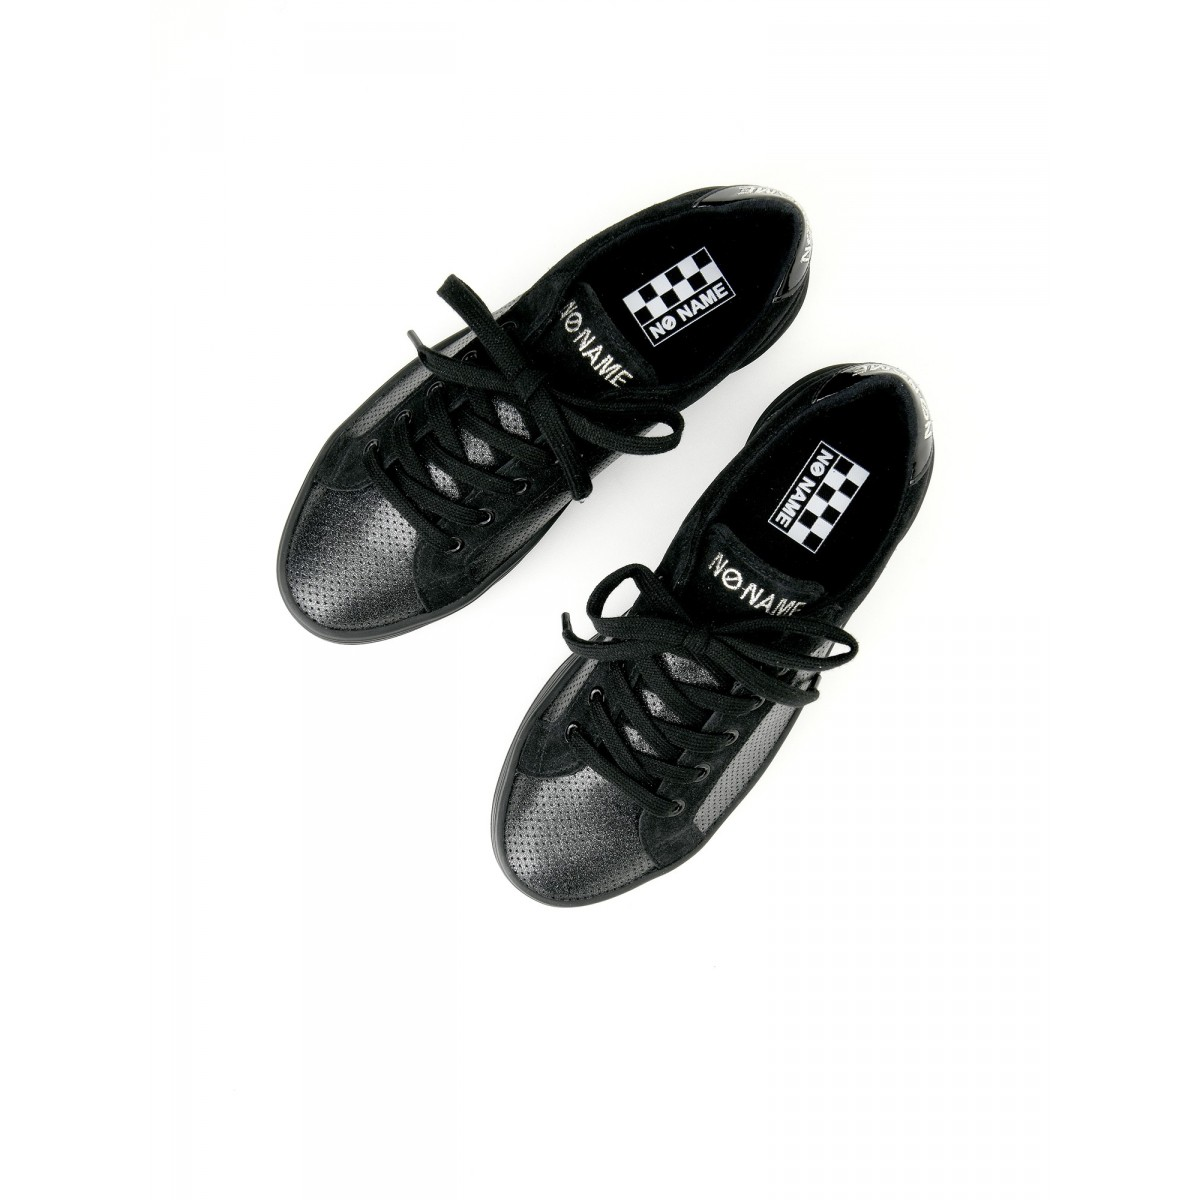 No Name PLATO BRIDGE - ALL STAR/SUEDE - BLACK/BLACK